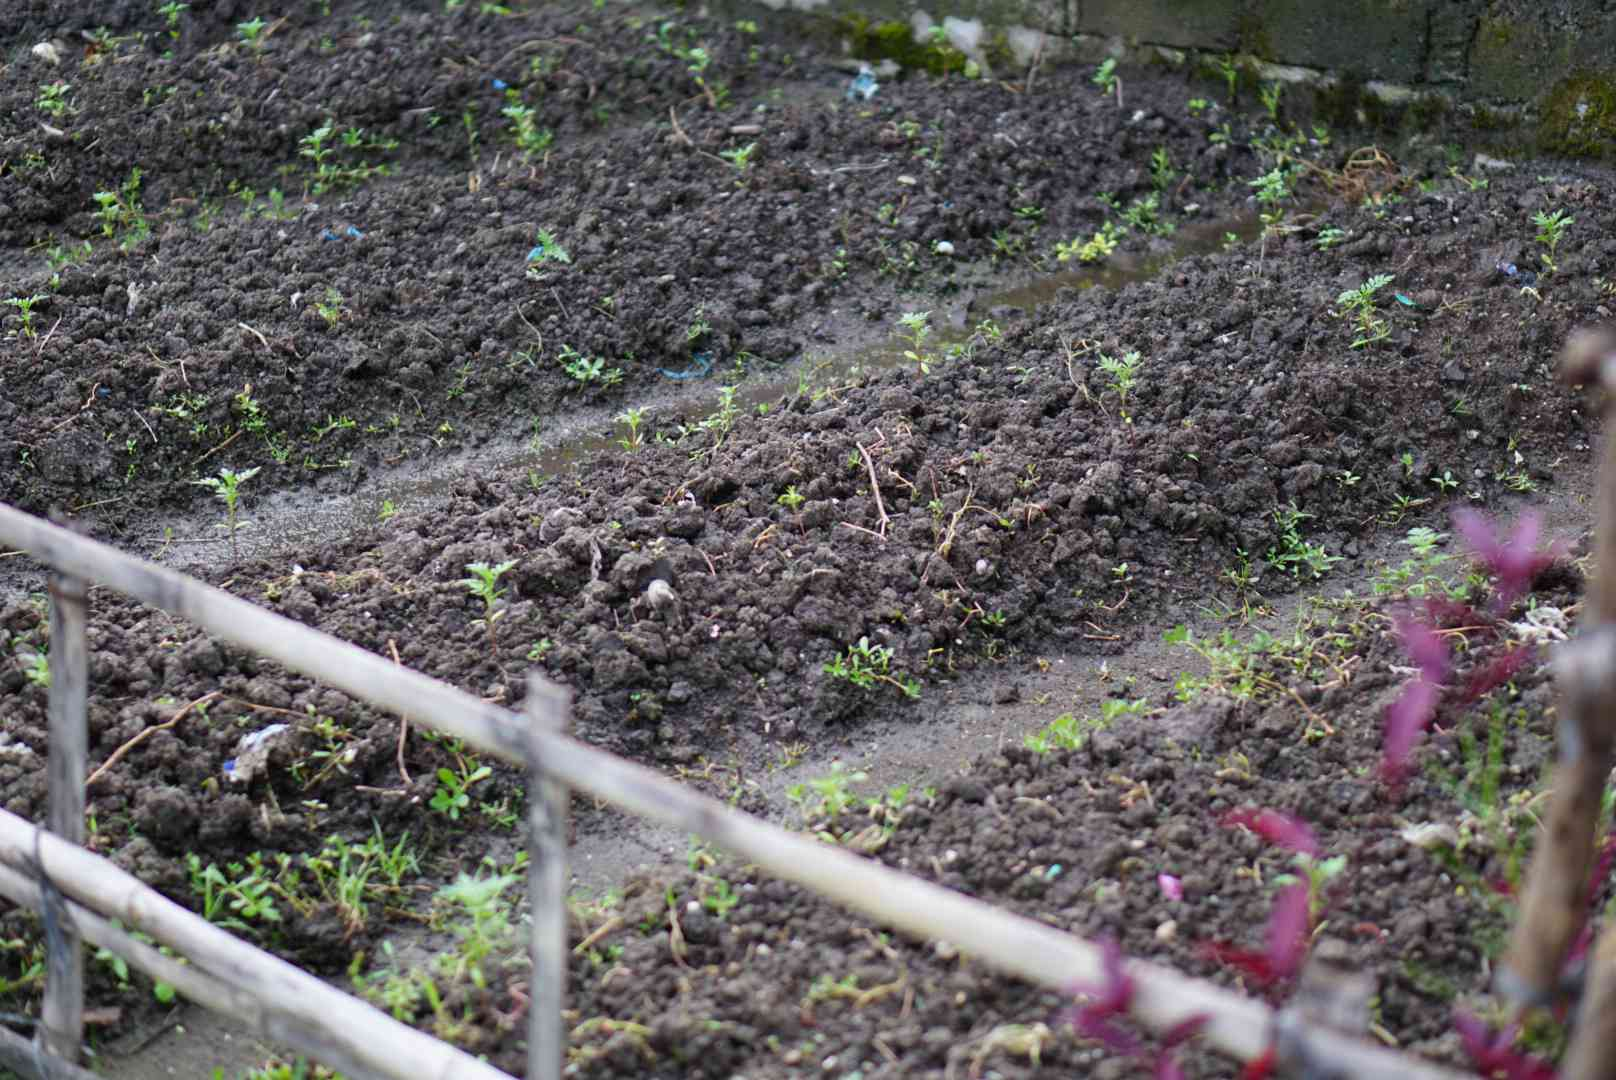 Staggered plantings of vegetables in garden